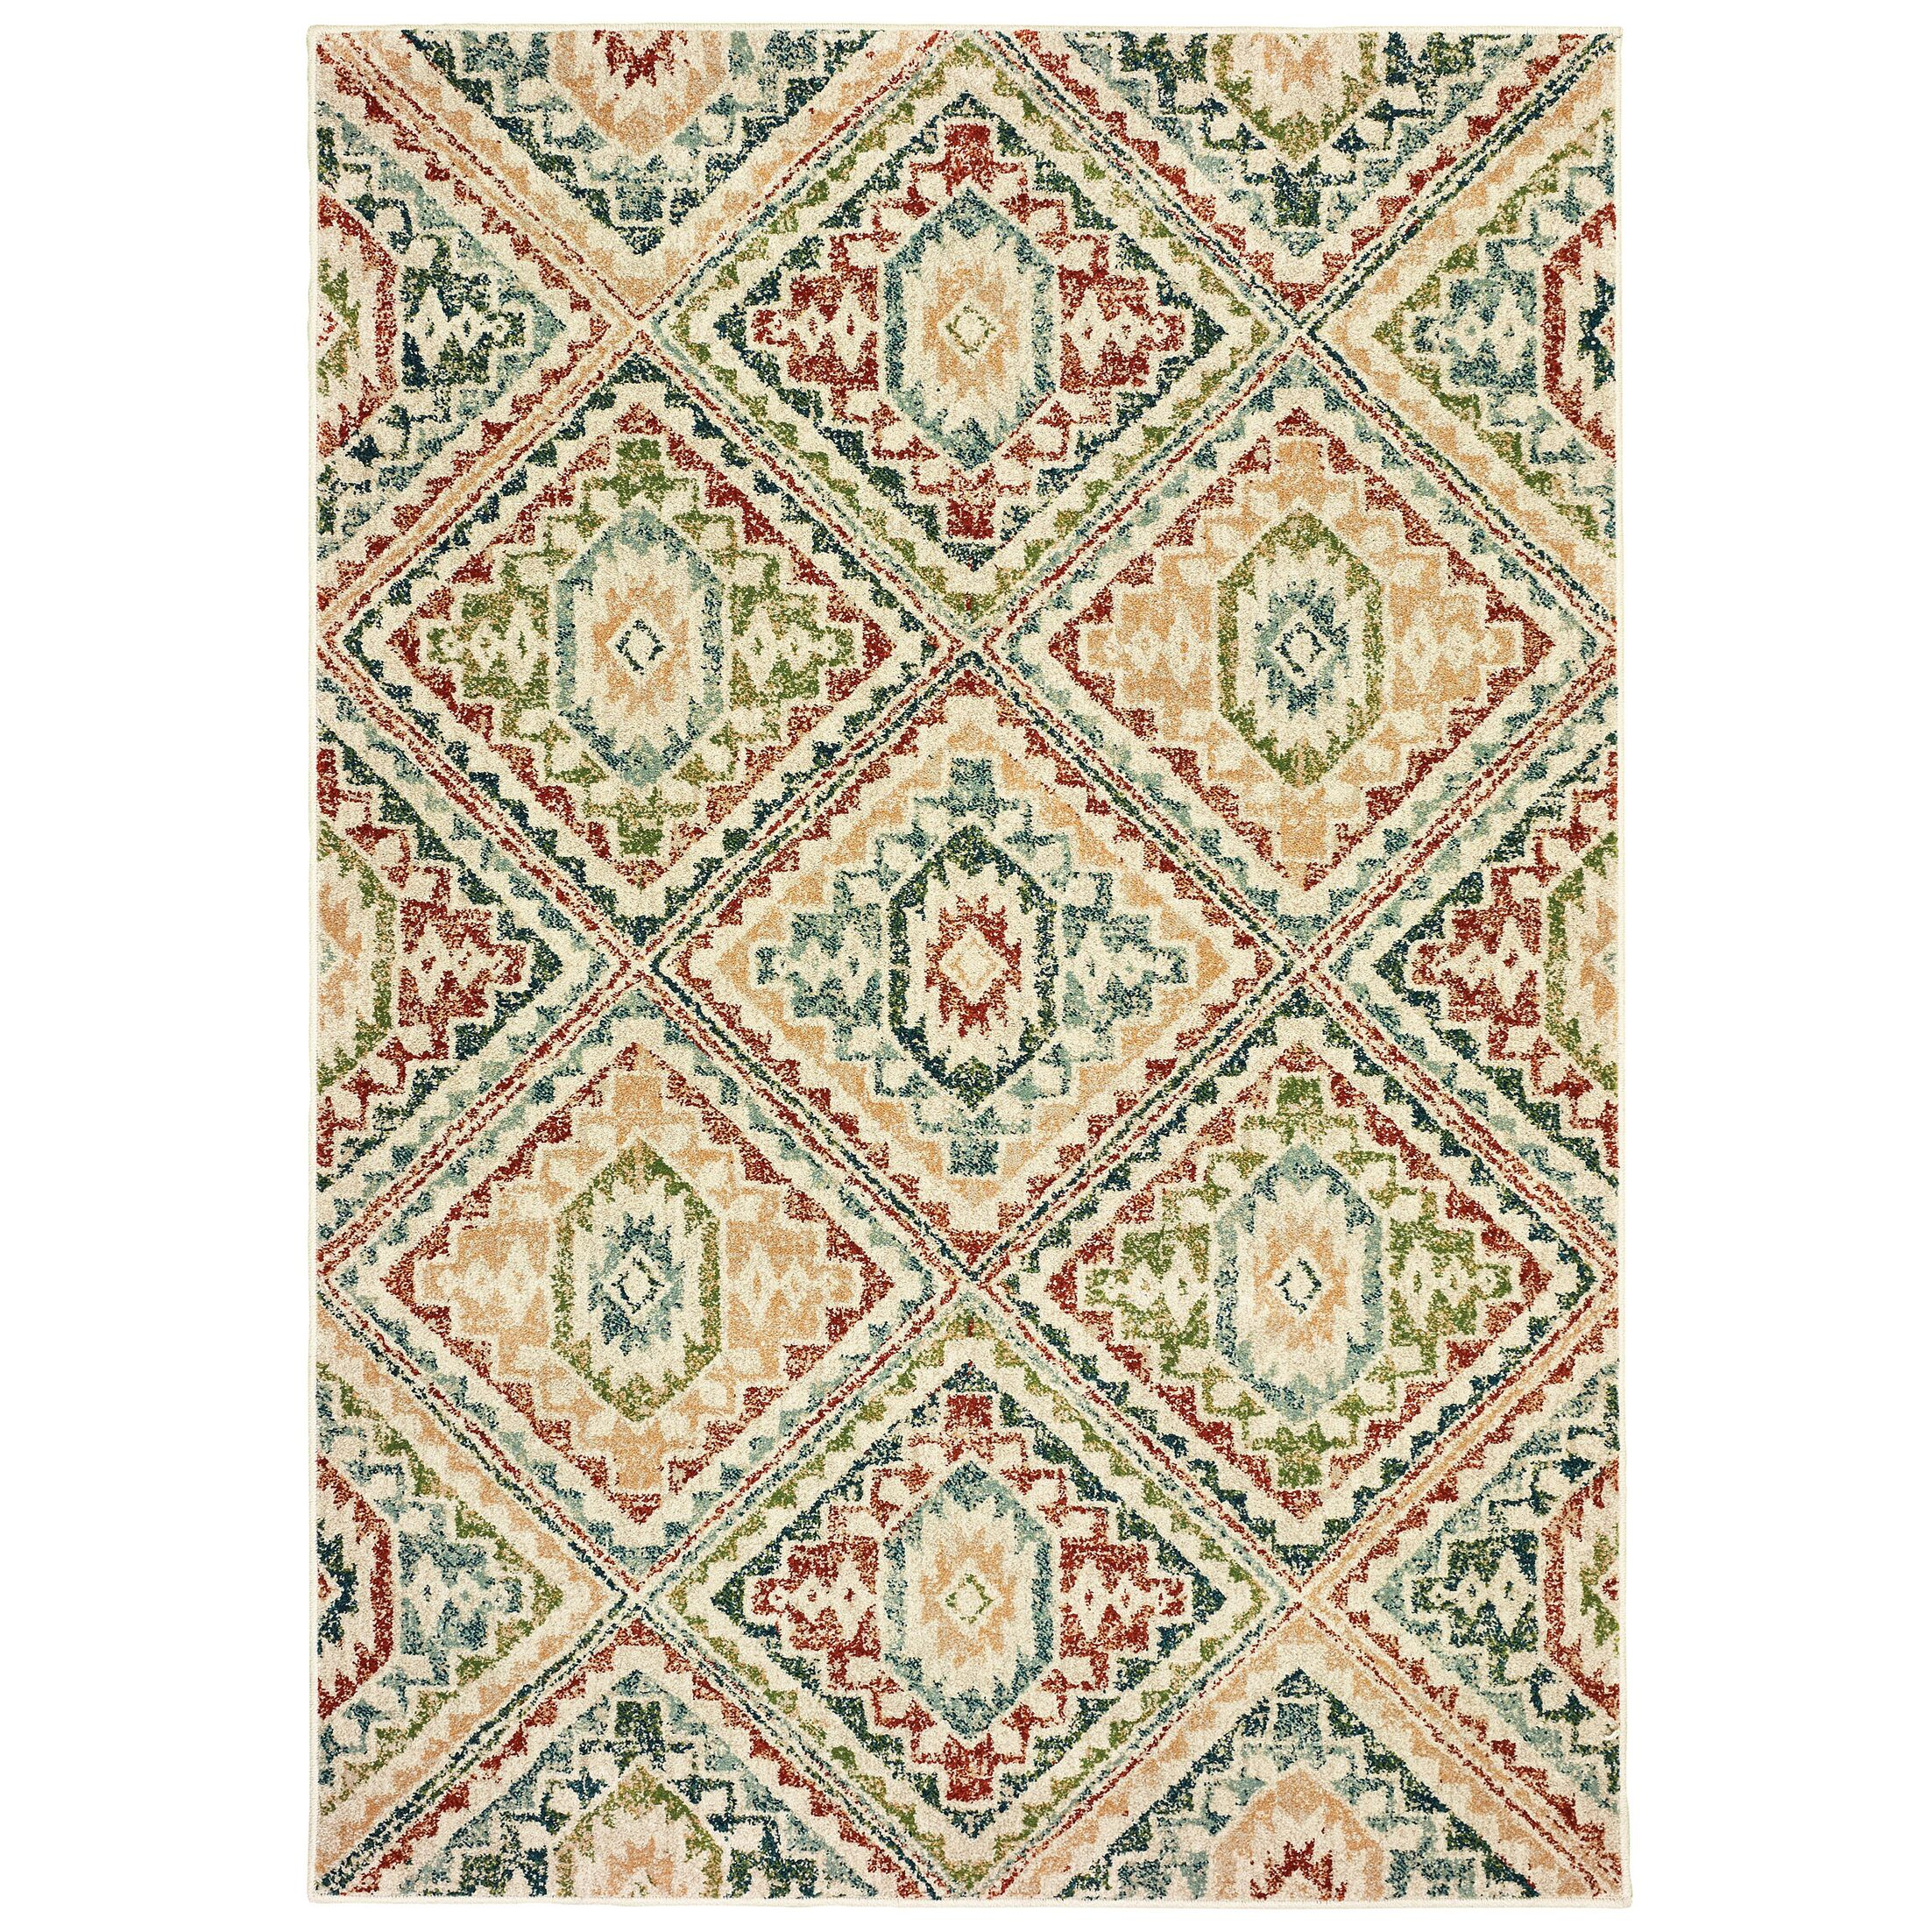 Hedberg Tribal Ivory/Green Area Rug Rug Size: Rectangle 3'10